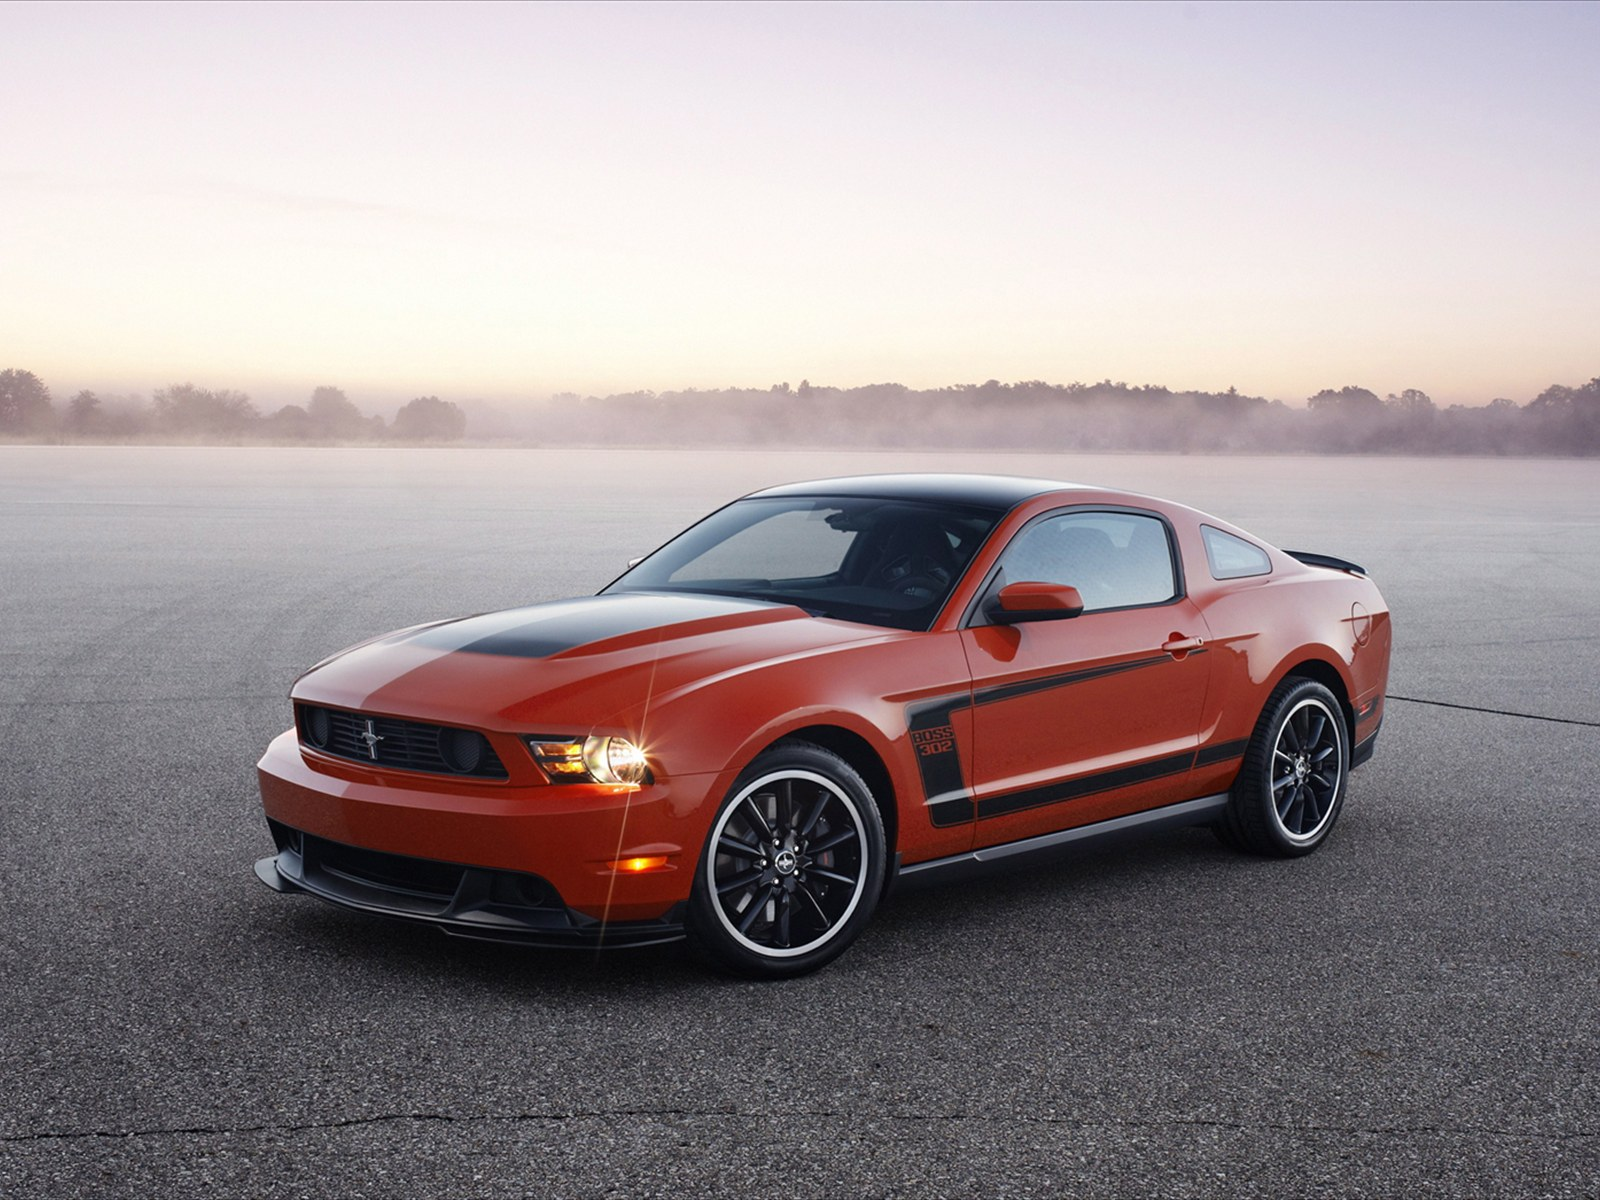 2012 Ford Mustang Boss 302 Pictures-Car Blog